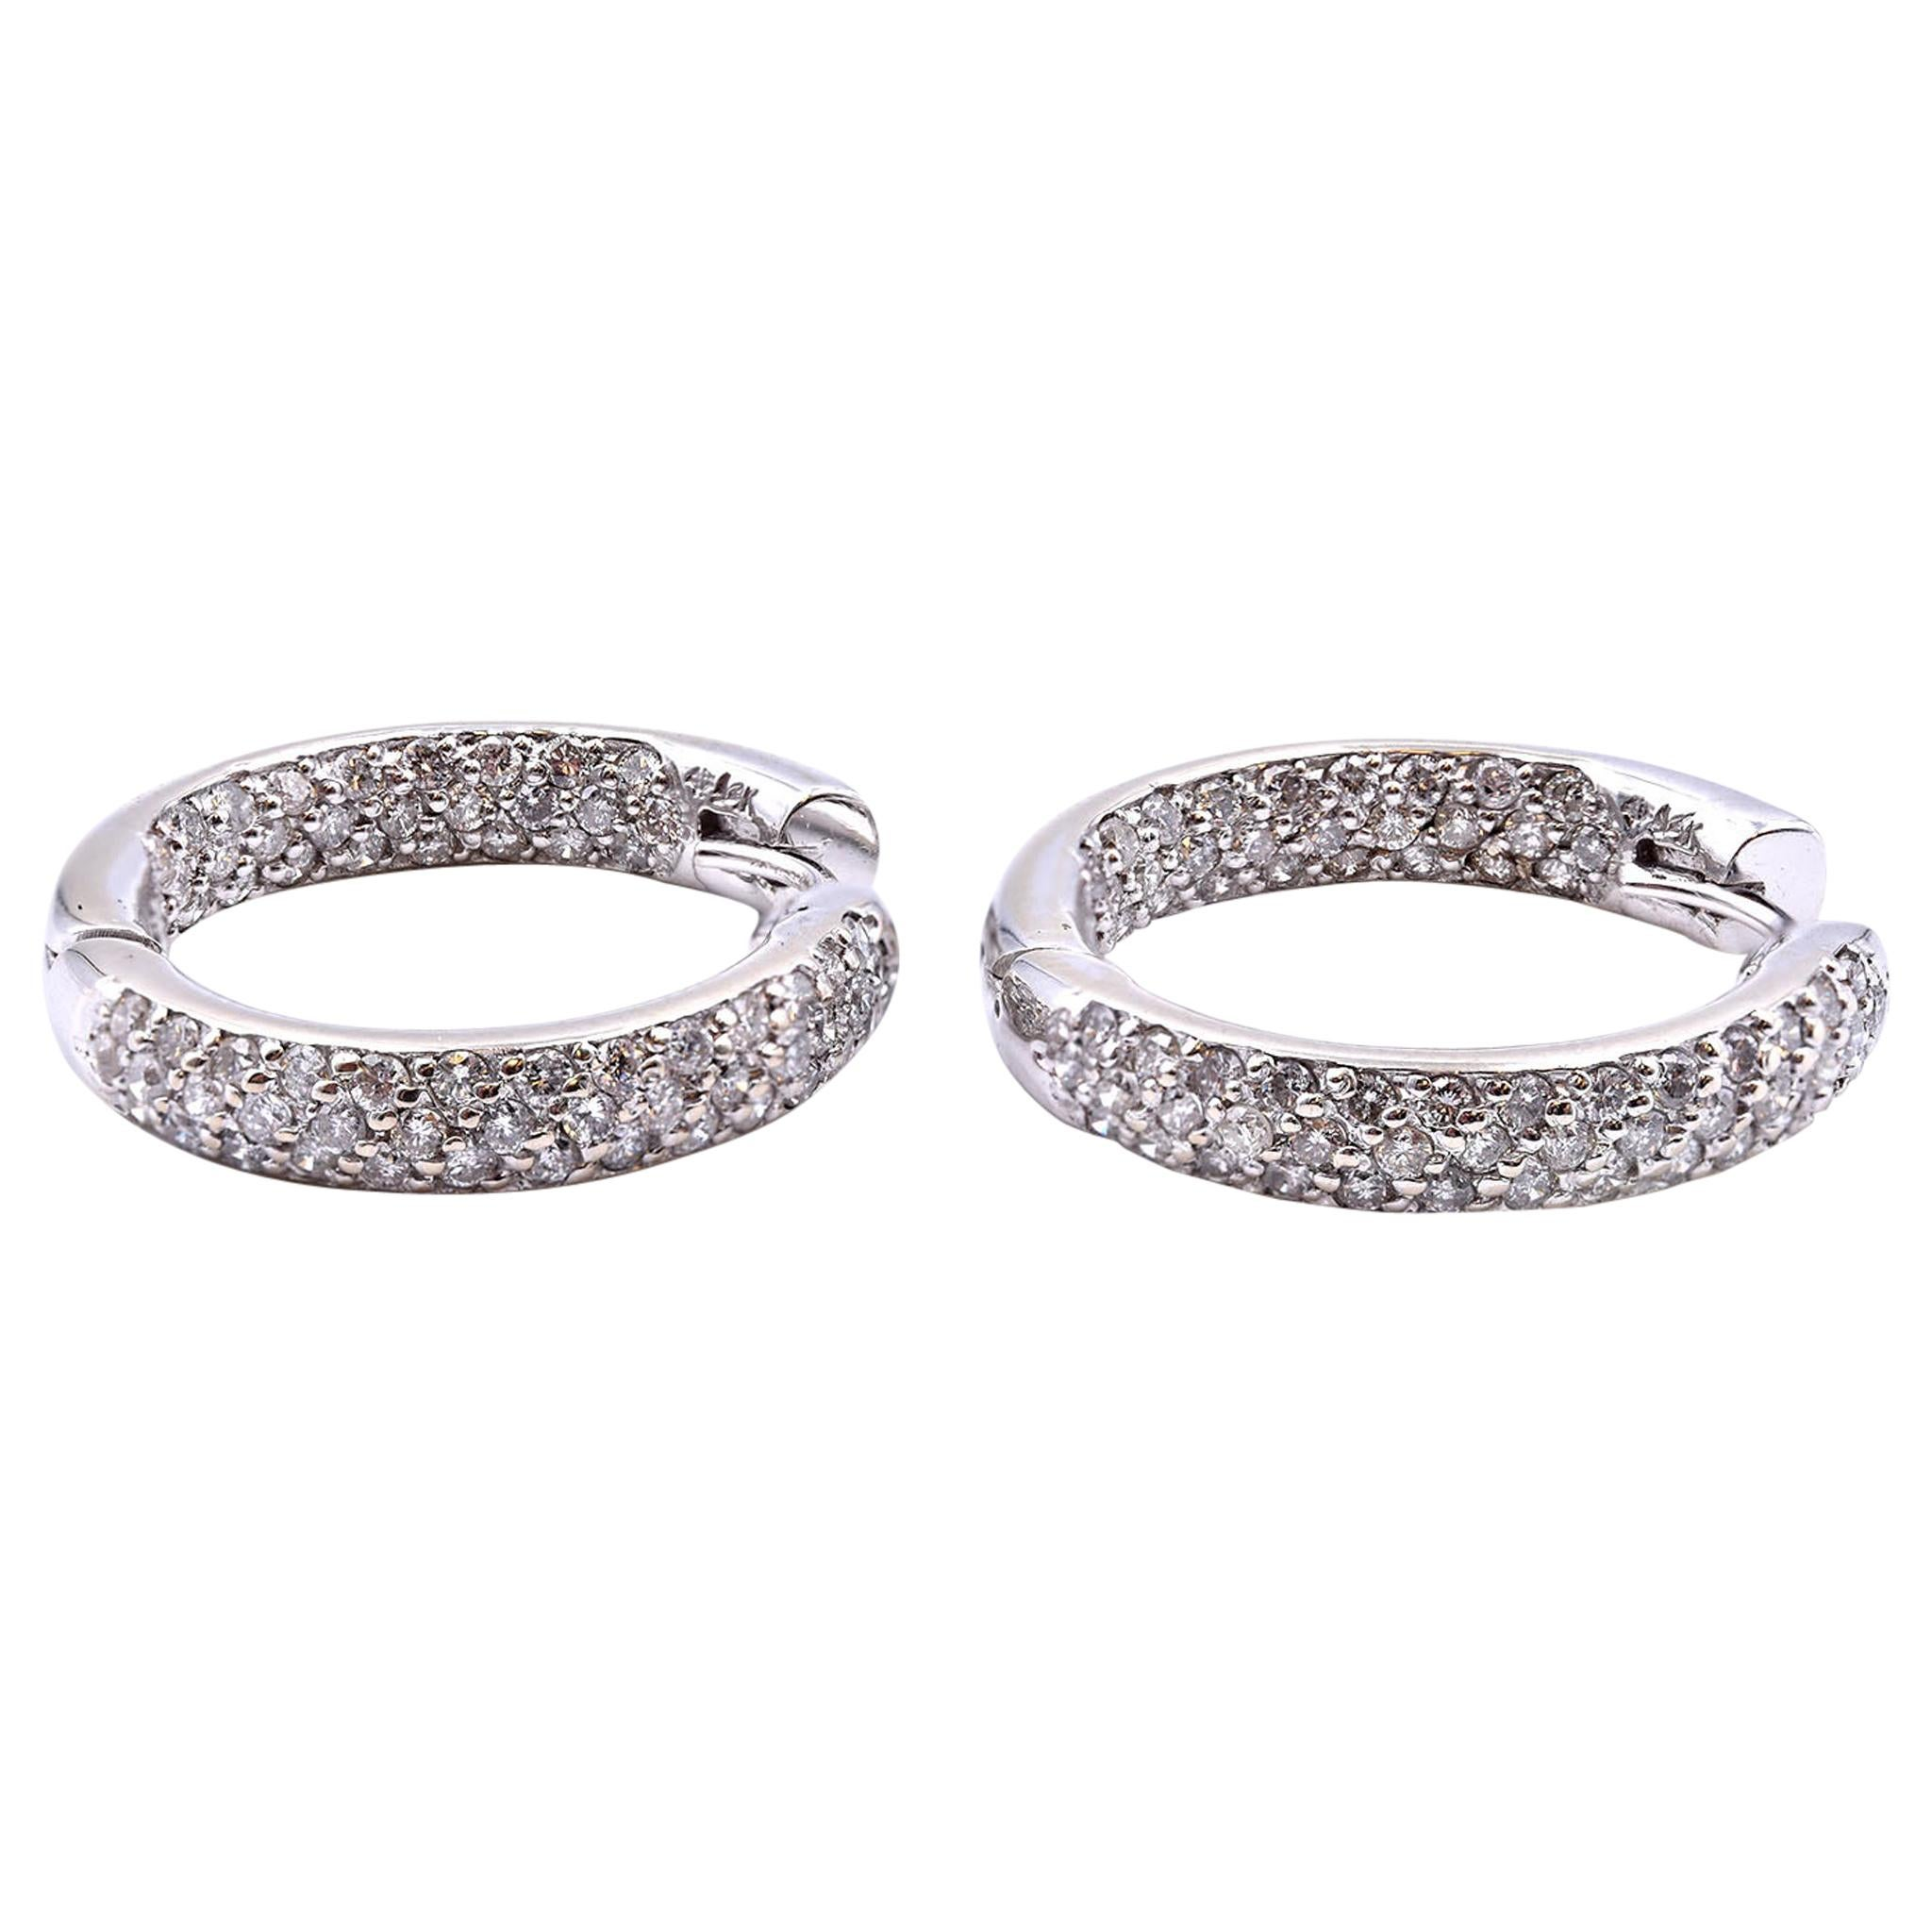 14 Karat White Gold Diamond Hoop Earrings